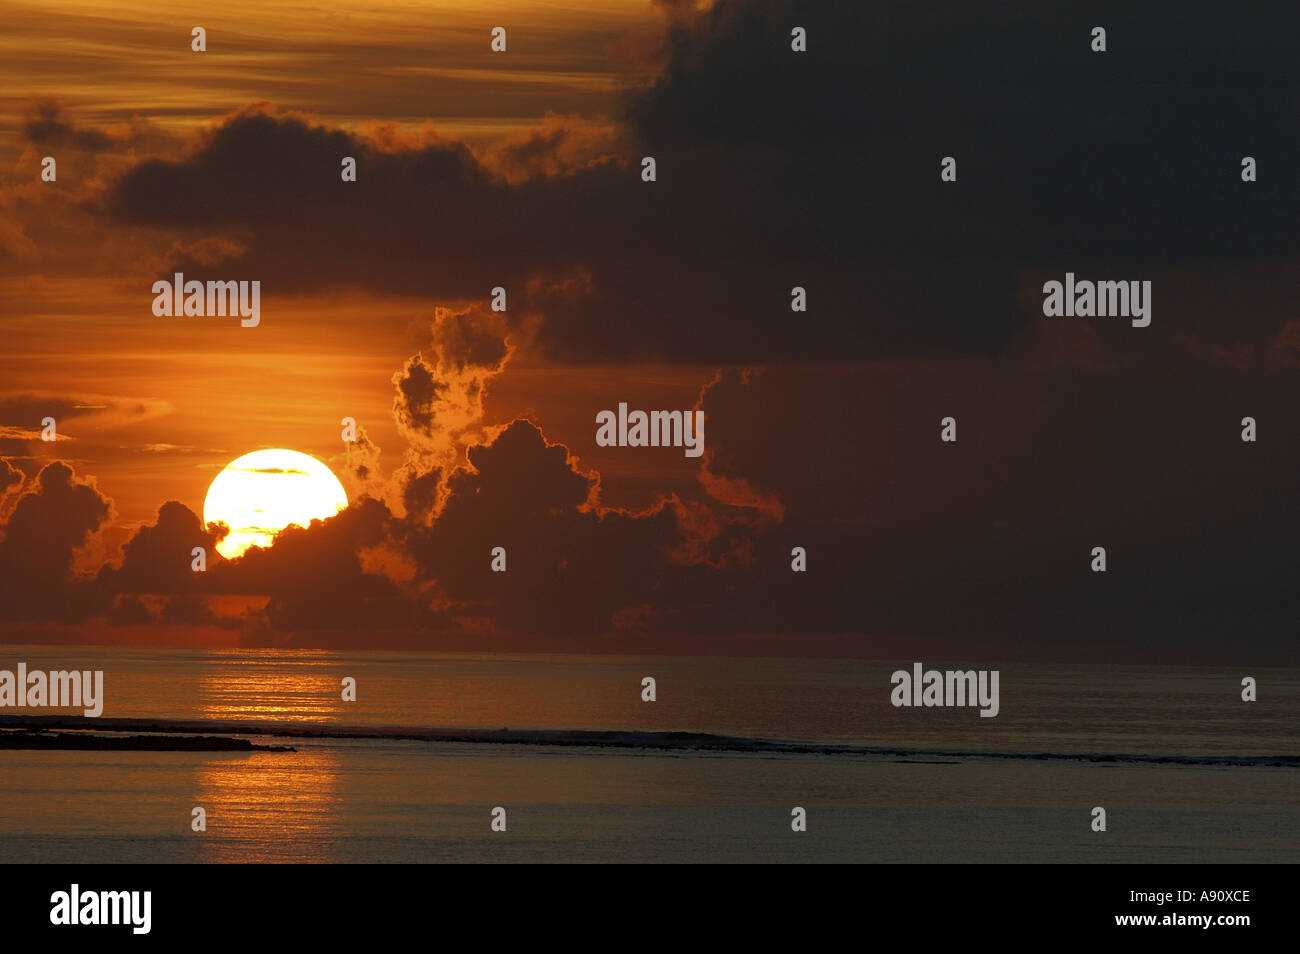 Sunrise - sun rising up over water, clouds and sea with red sky - Stock Image